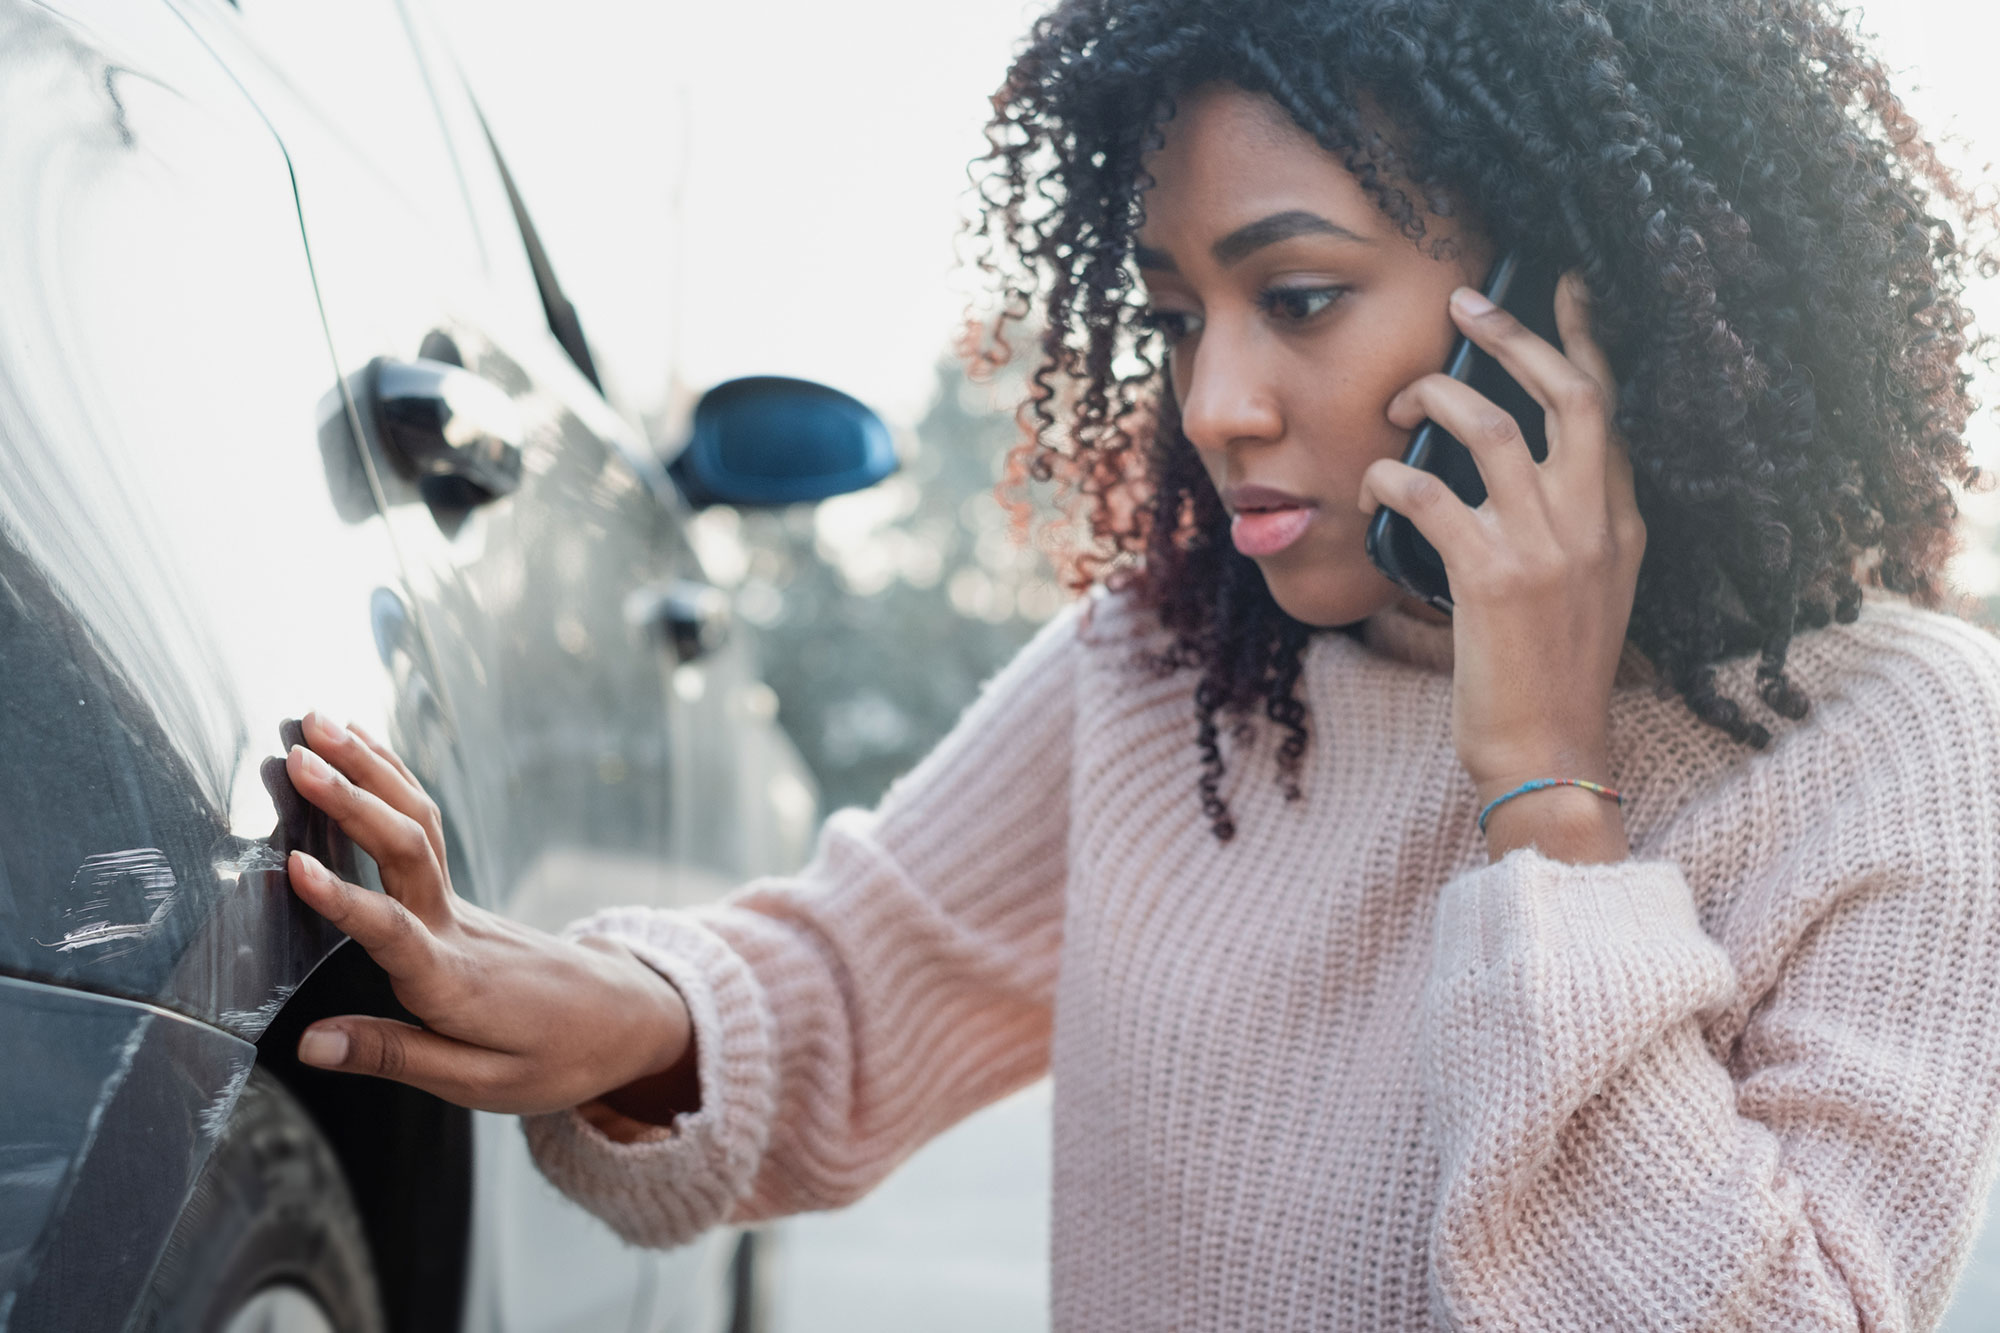 Woman on the phone looking at damage on the side of her car